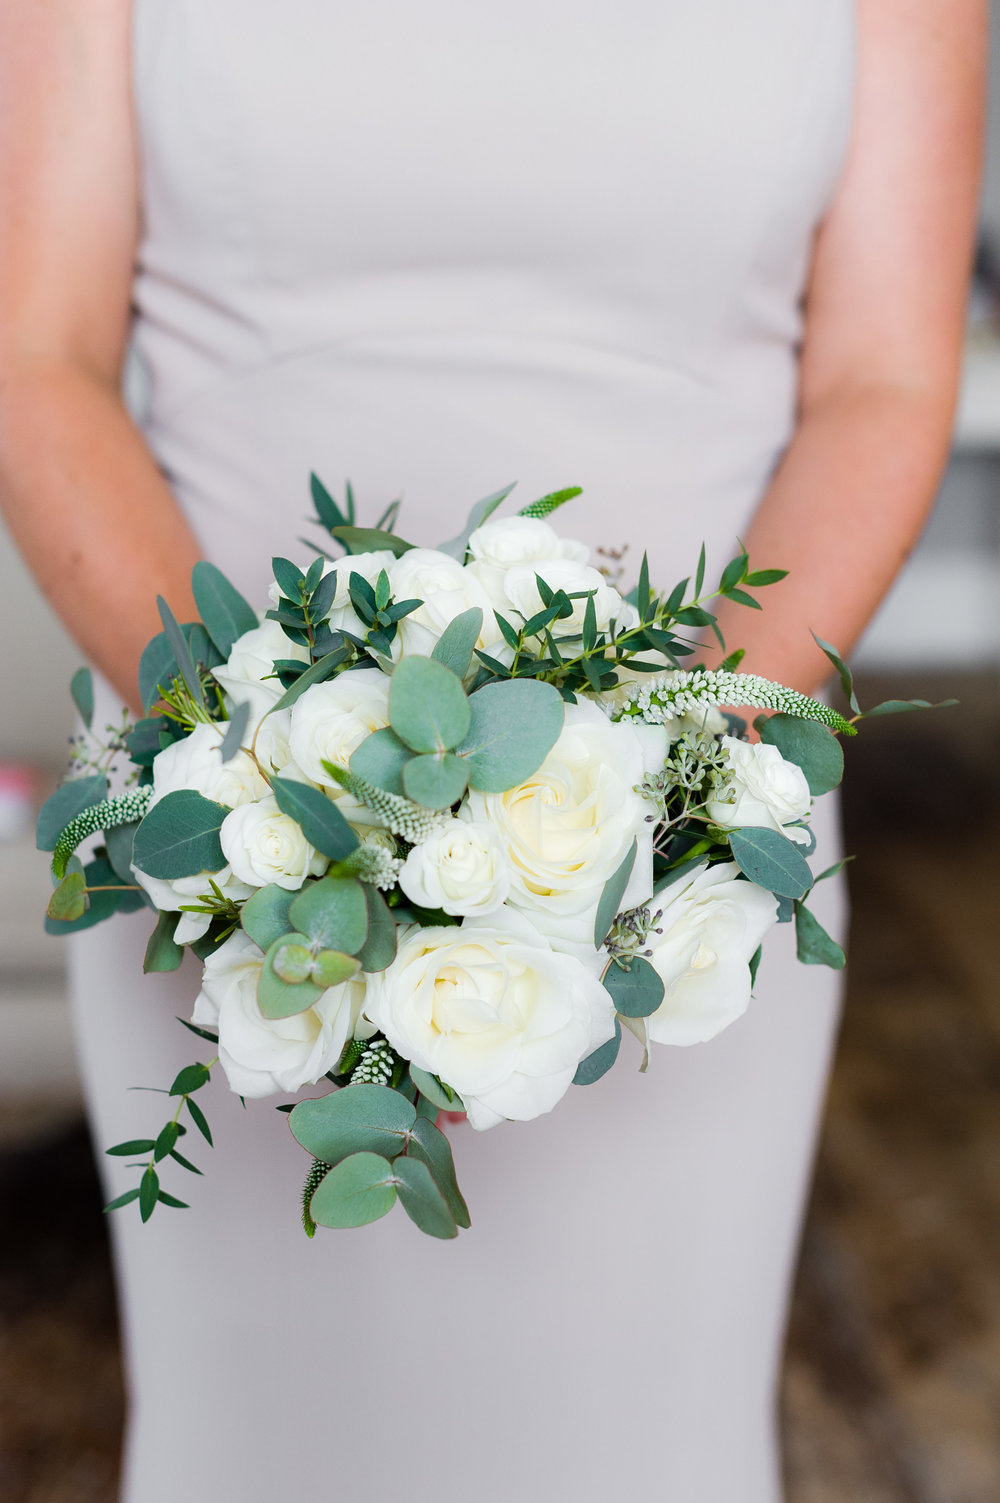 Adult bridesmaid bouquet by Tineke